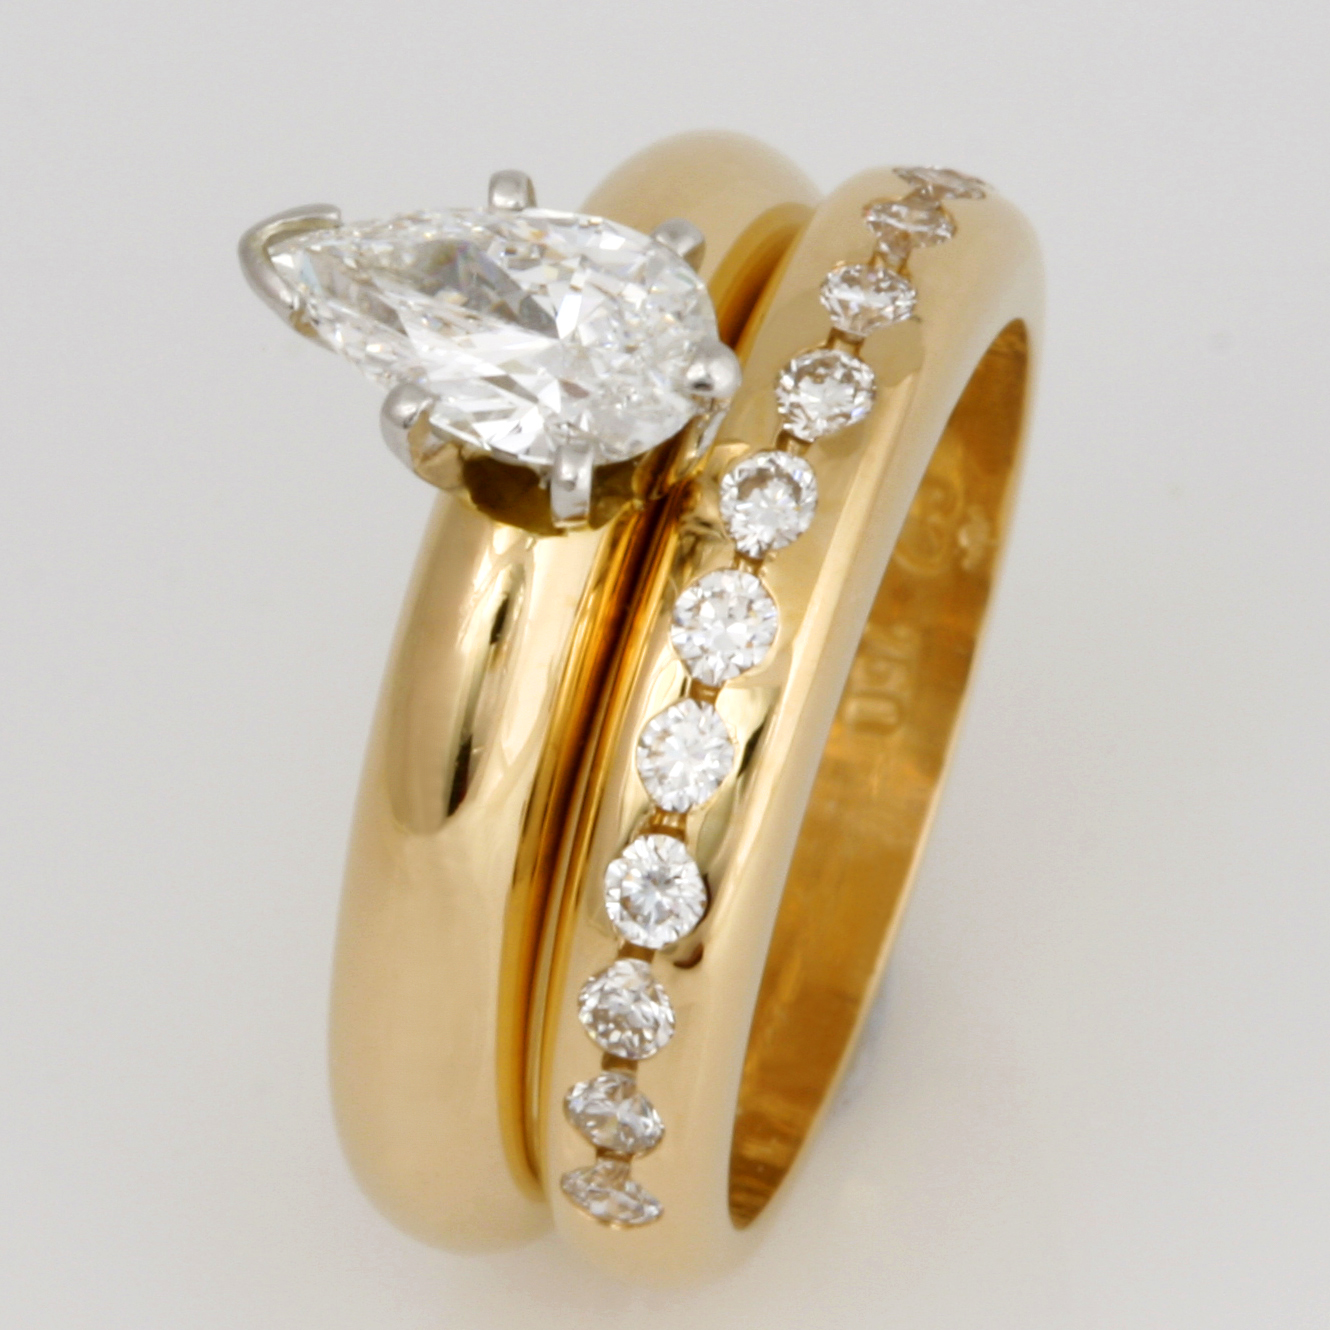 Handmade ladies 18ct yellow gold diamond engagement and wedding ring set.